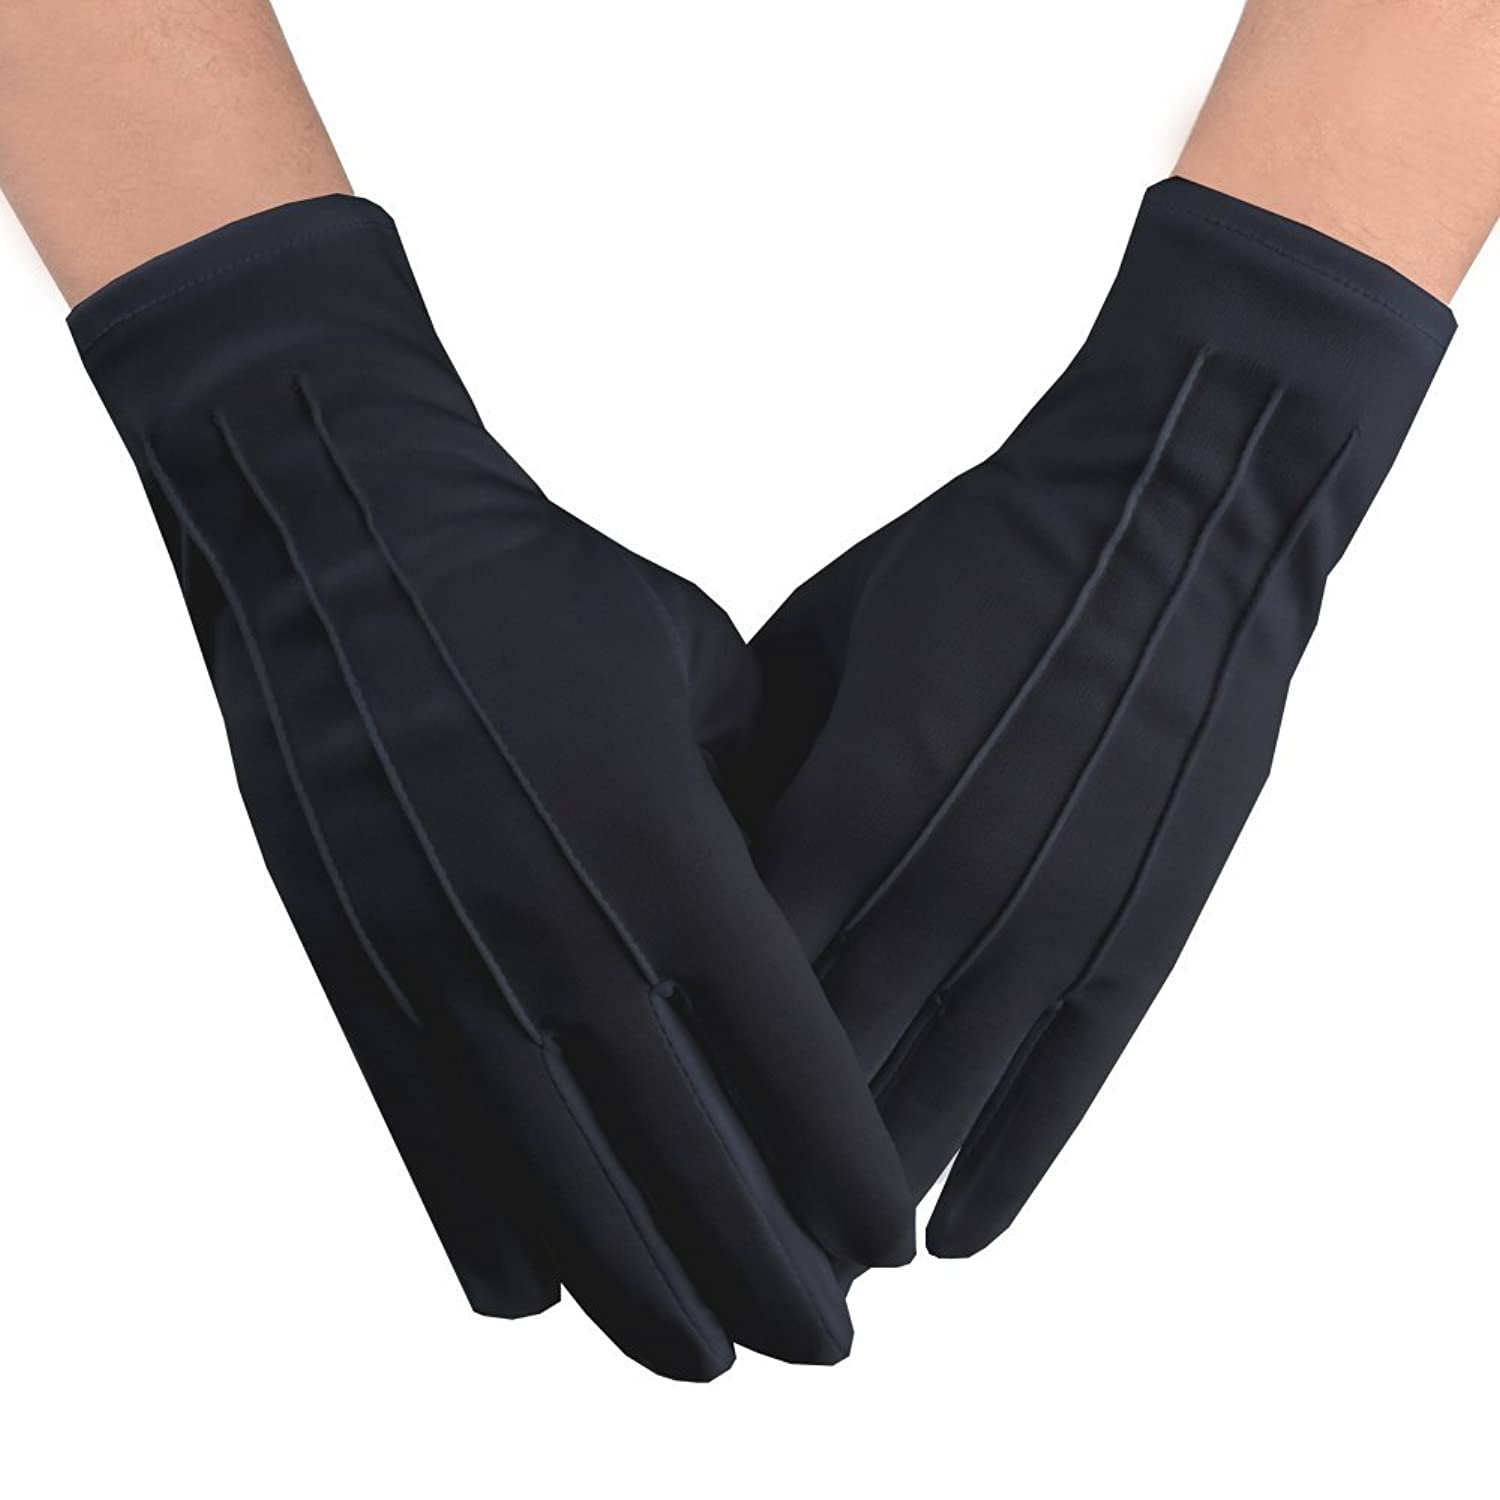 Victorian Men's Formal Wear, Wedding Tuxedo Men Black Cotton Gloves  AT vintagedancer.com